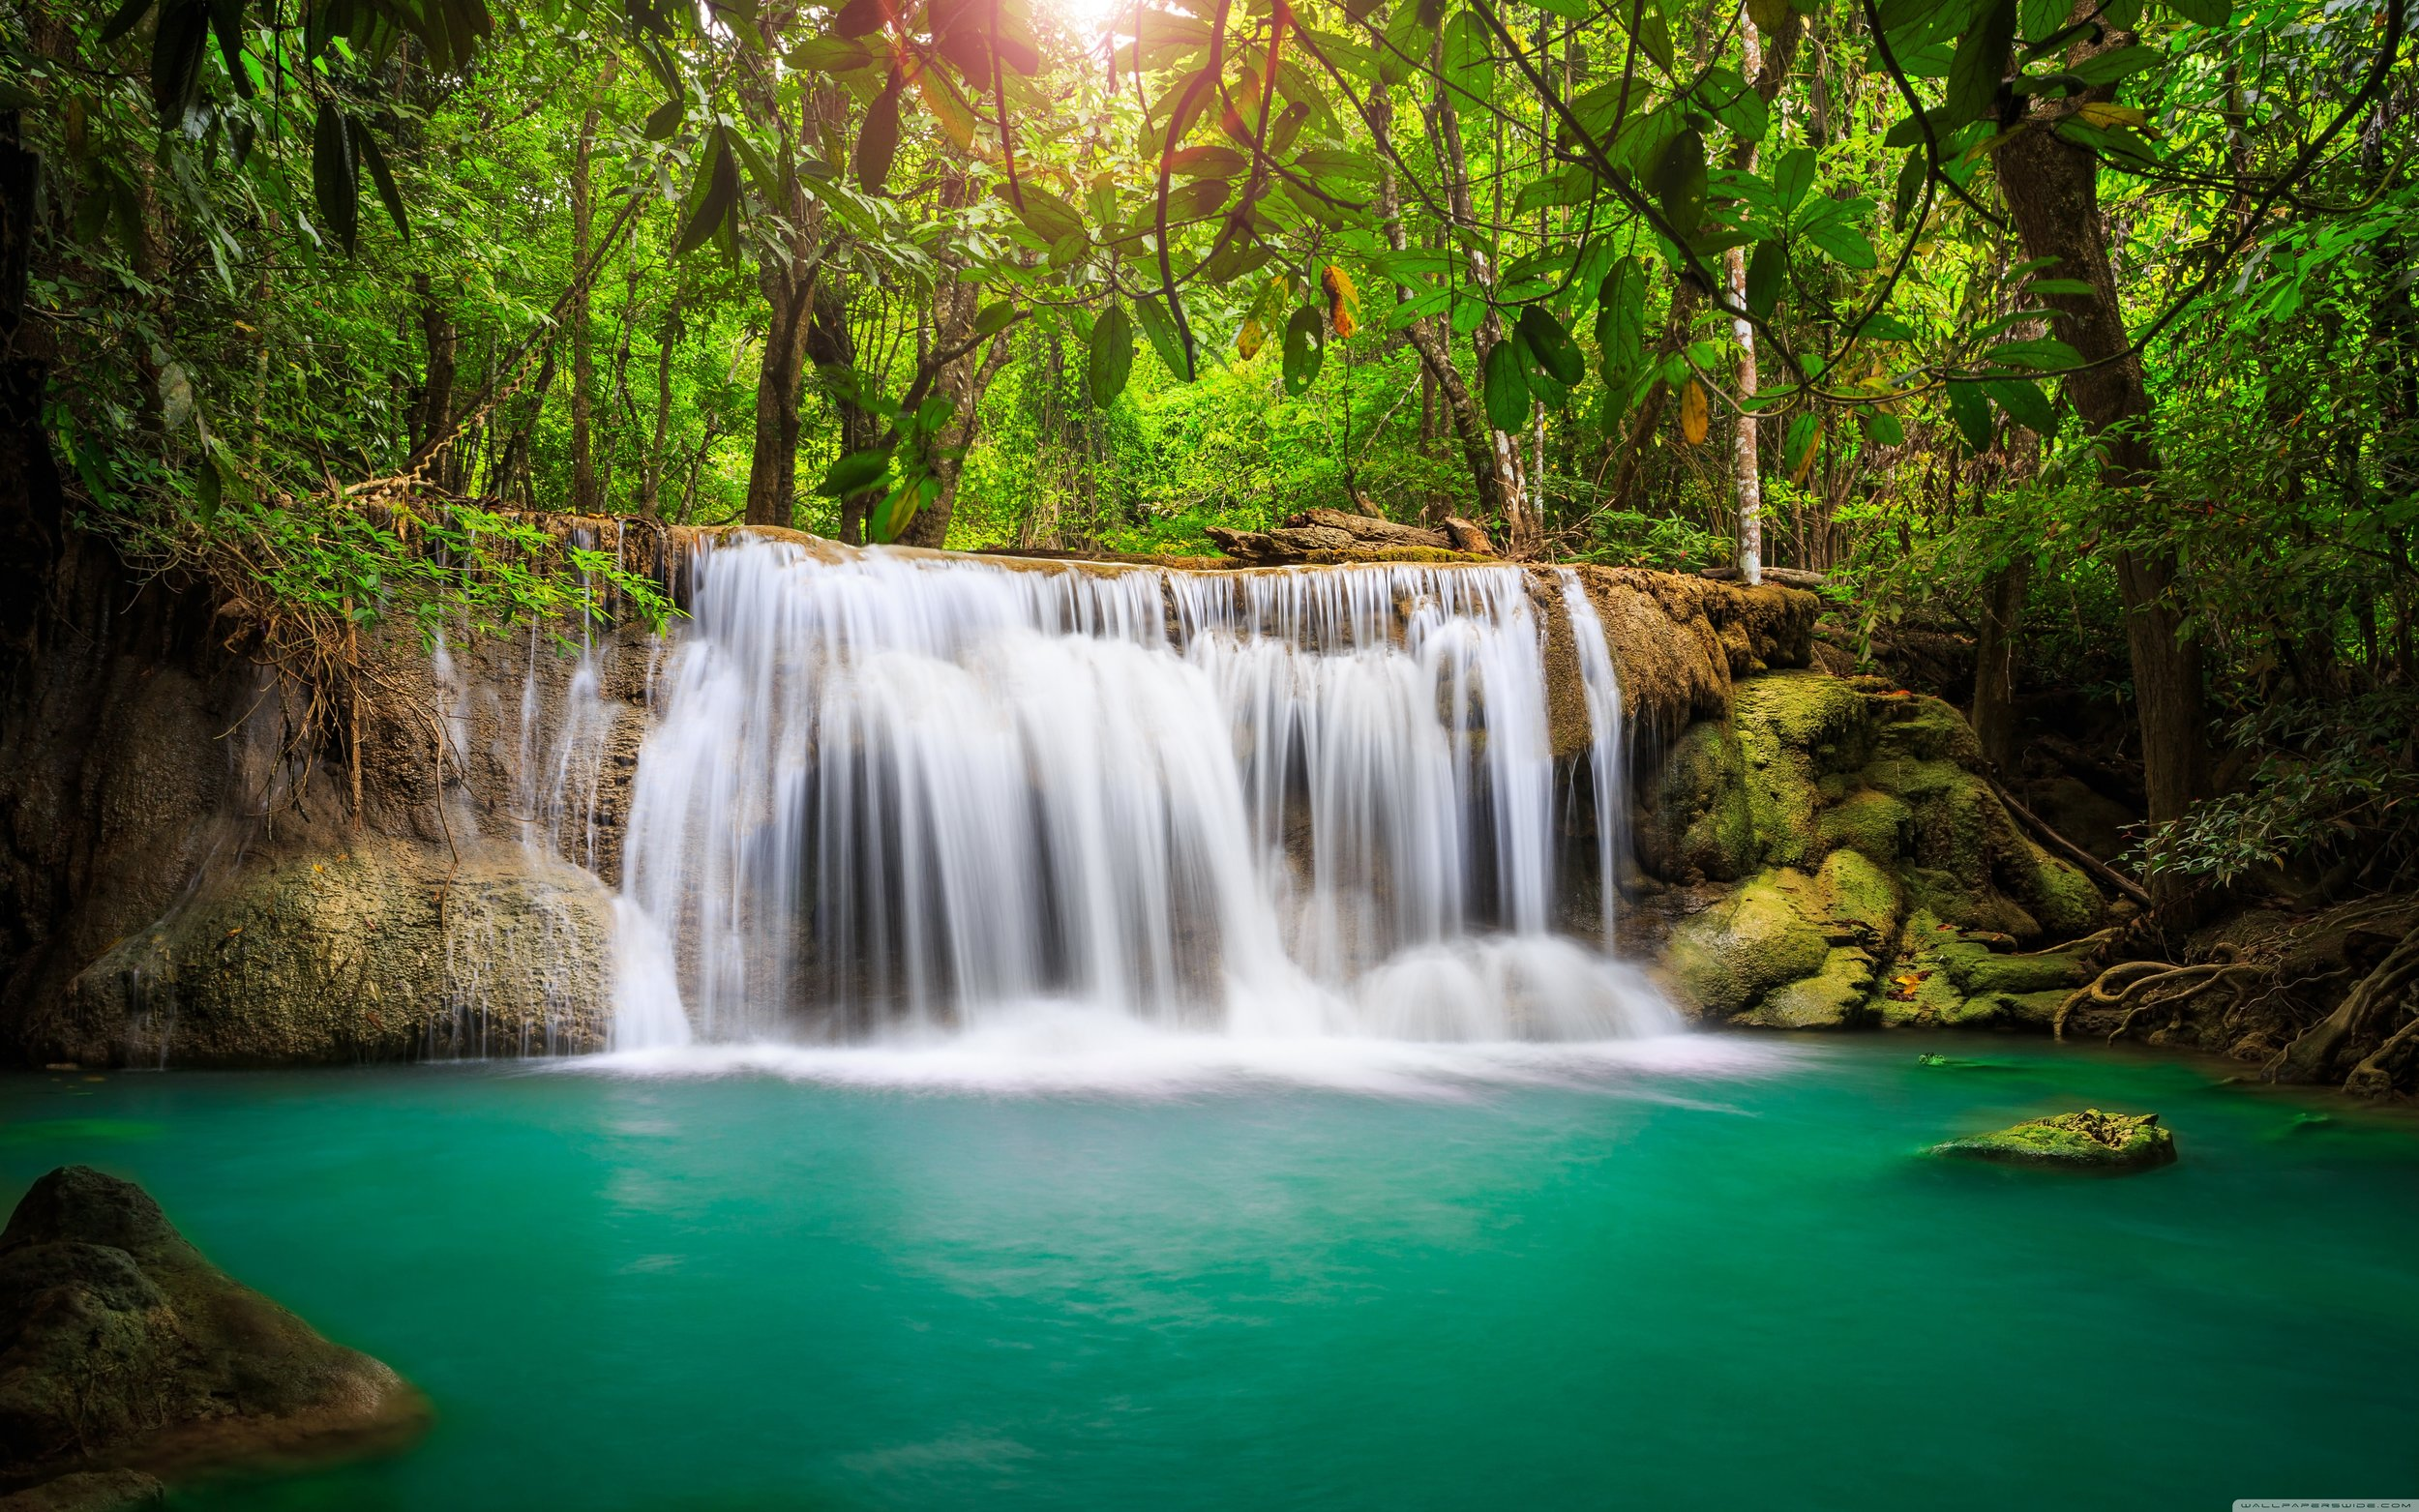 rainforest_waterfall-wallpaper-5120x3200.jpg